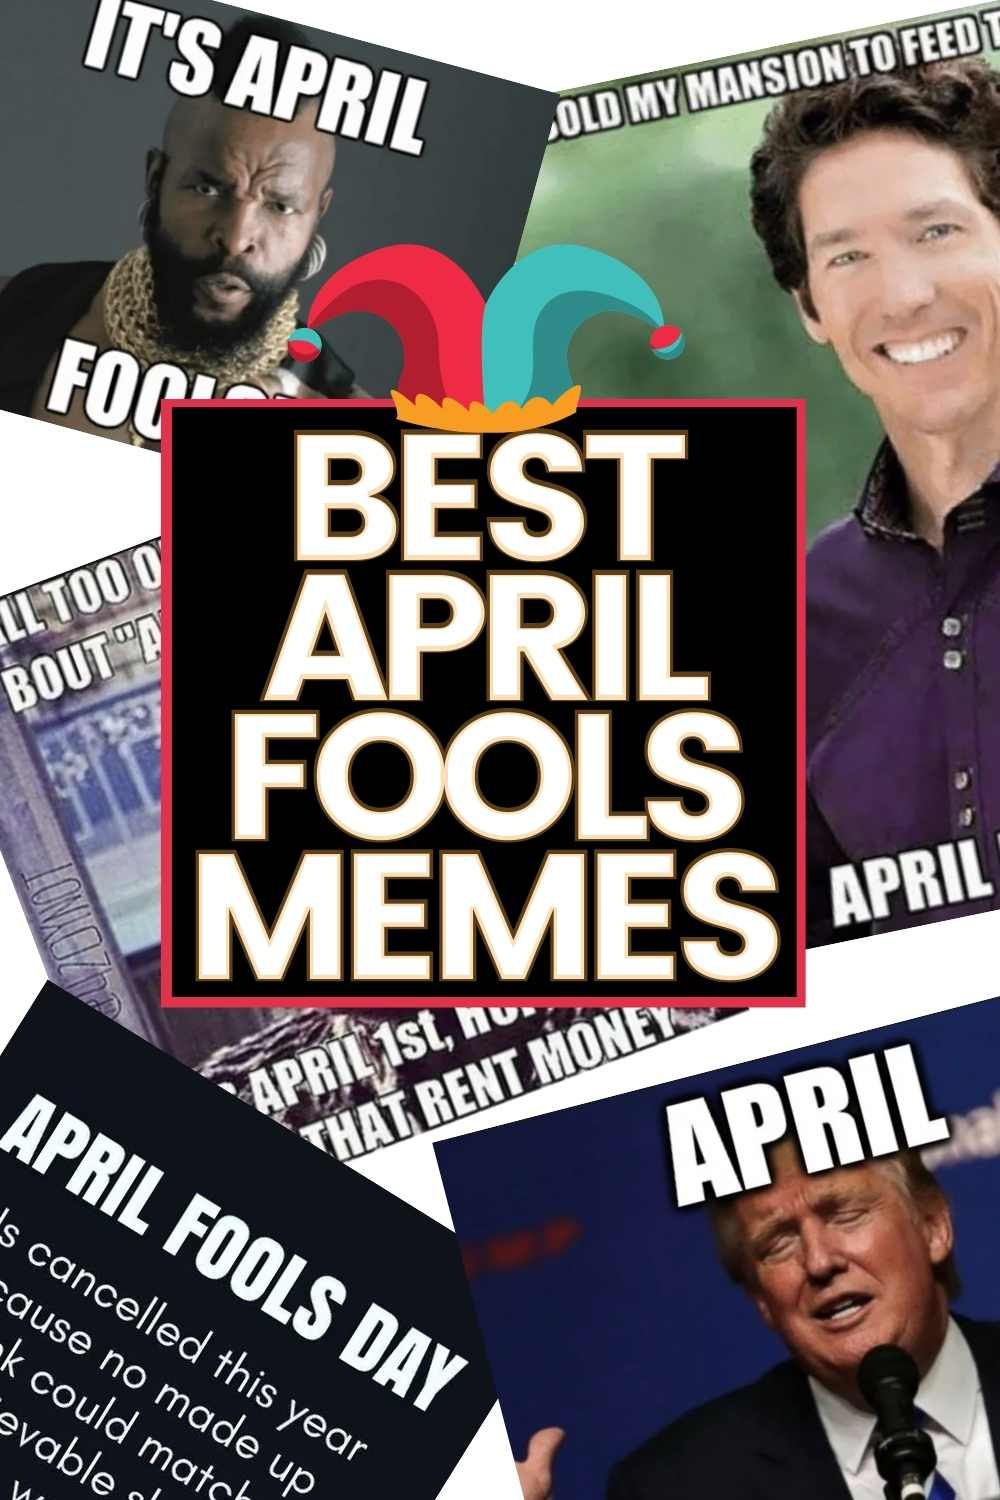 April fools memes - funny images about april 1st jokes and pranks